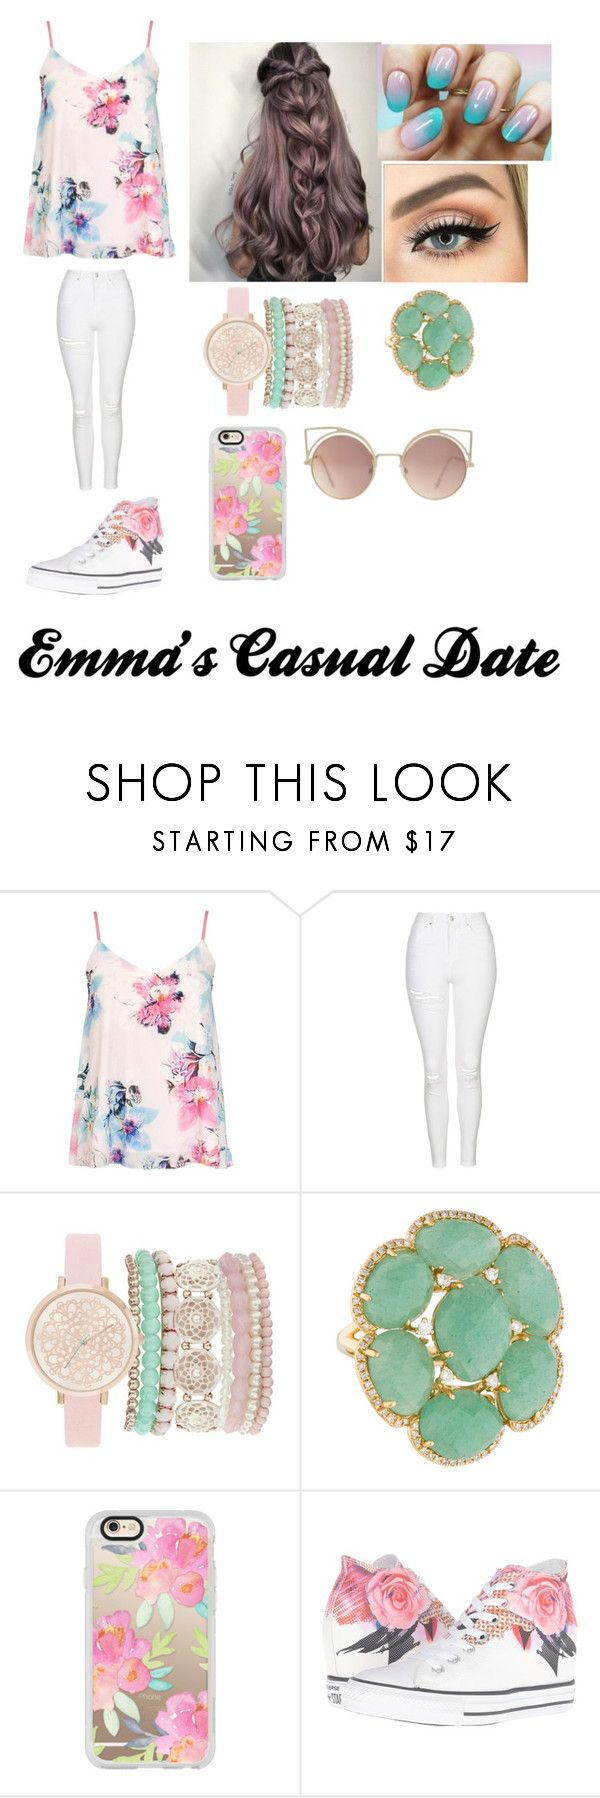 """""""Emma's Casual Date Outfit"""" by abschaffer on Polyvore featuring Dorothy Perkins, Topshop, Jessica Carlyle, Casetify, Converse and MANGO"""